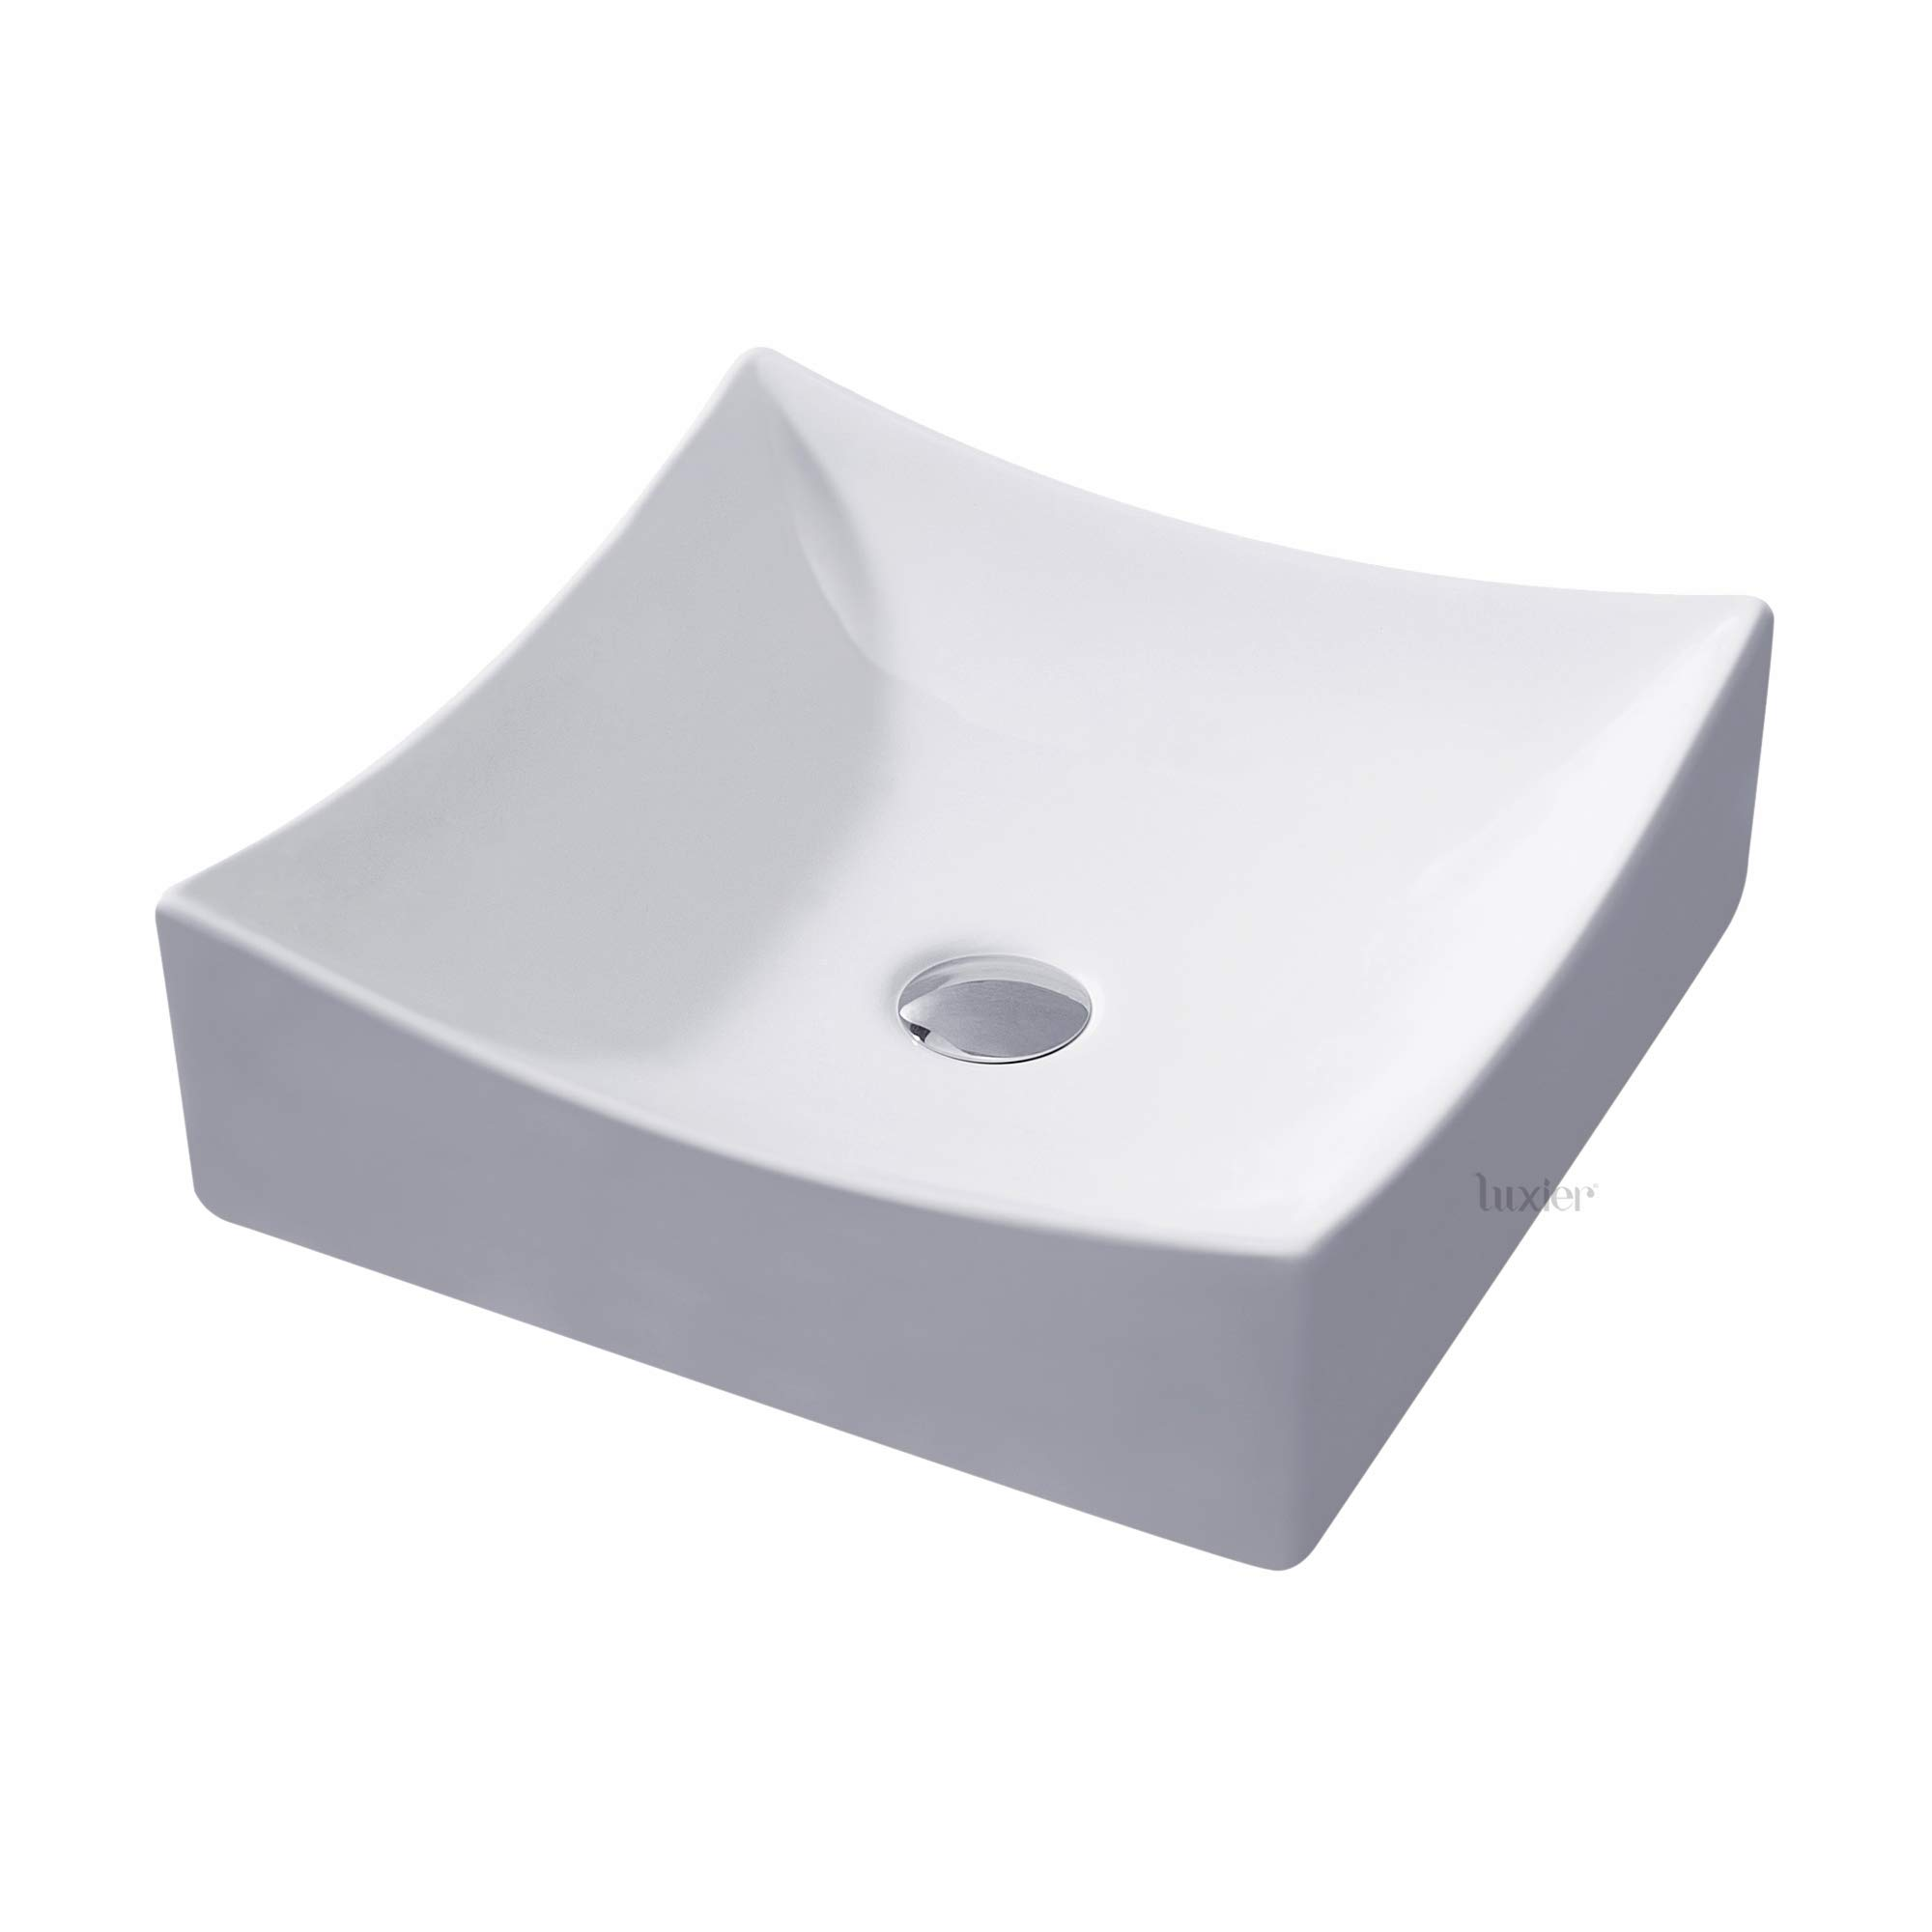 Luxier CS-016 Bathroom Porcelain Ceramic Vessel Vanity Sink Art Basin